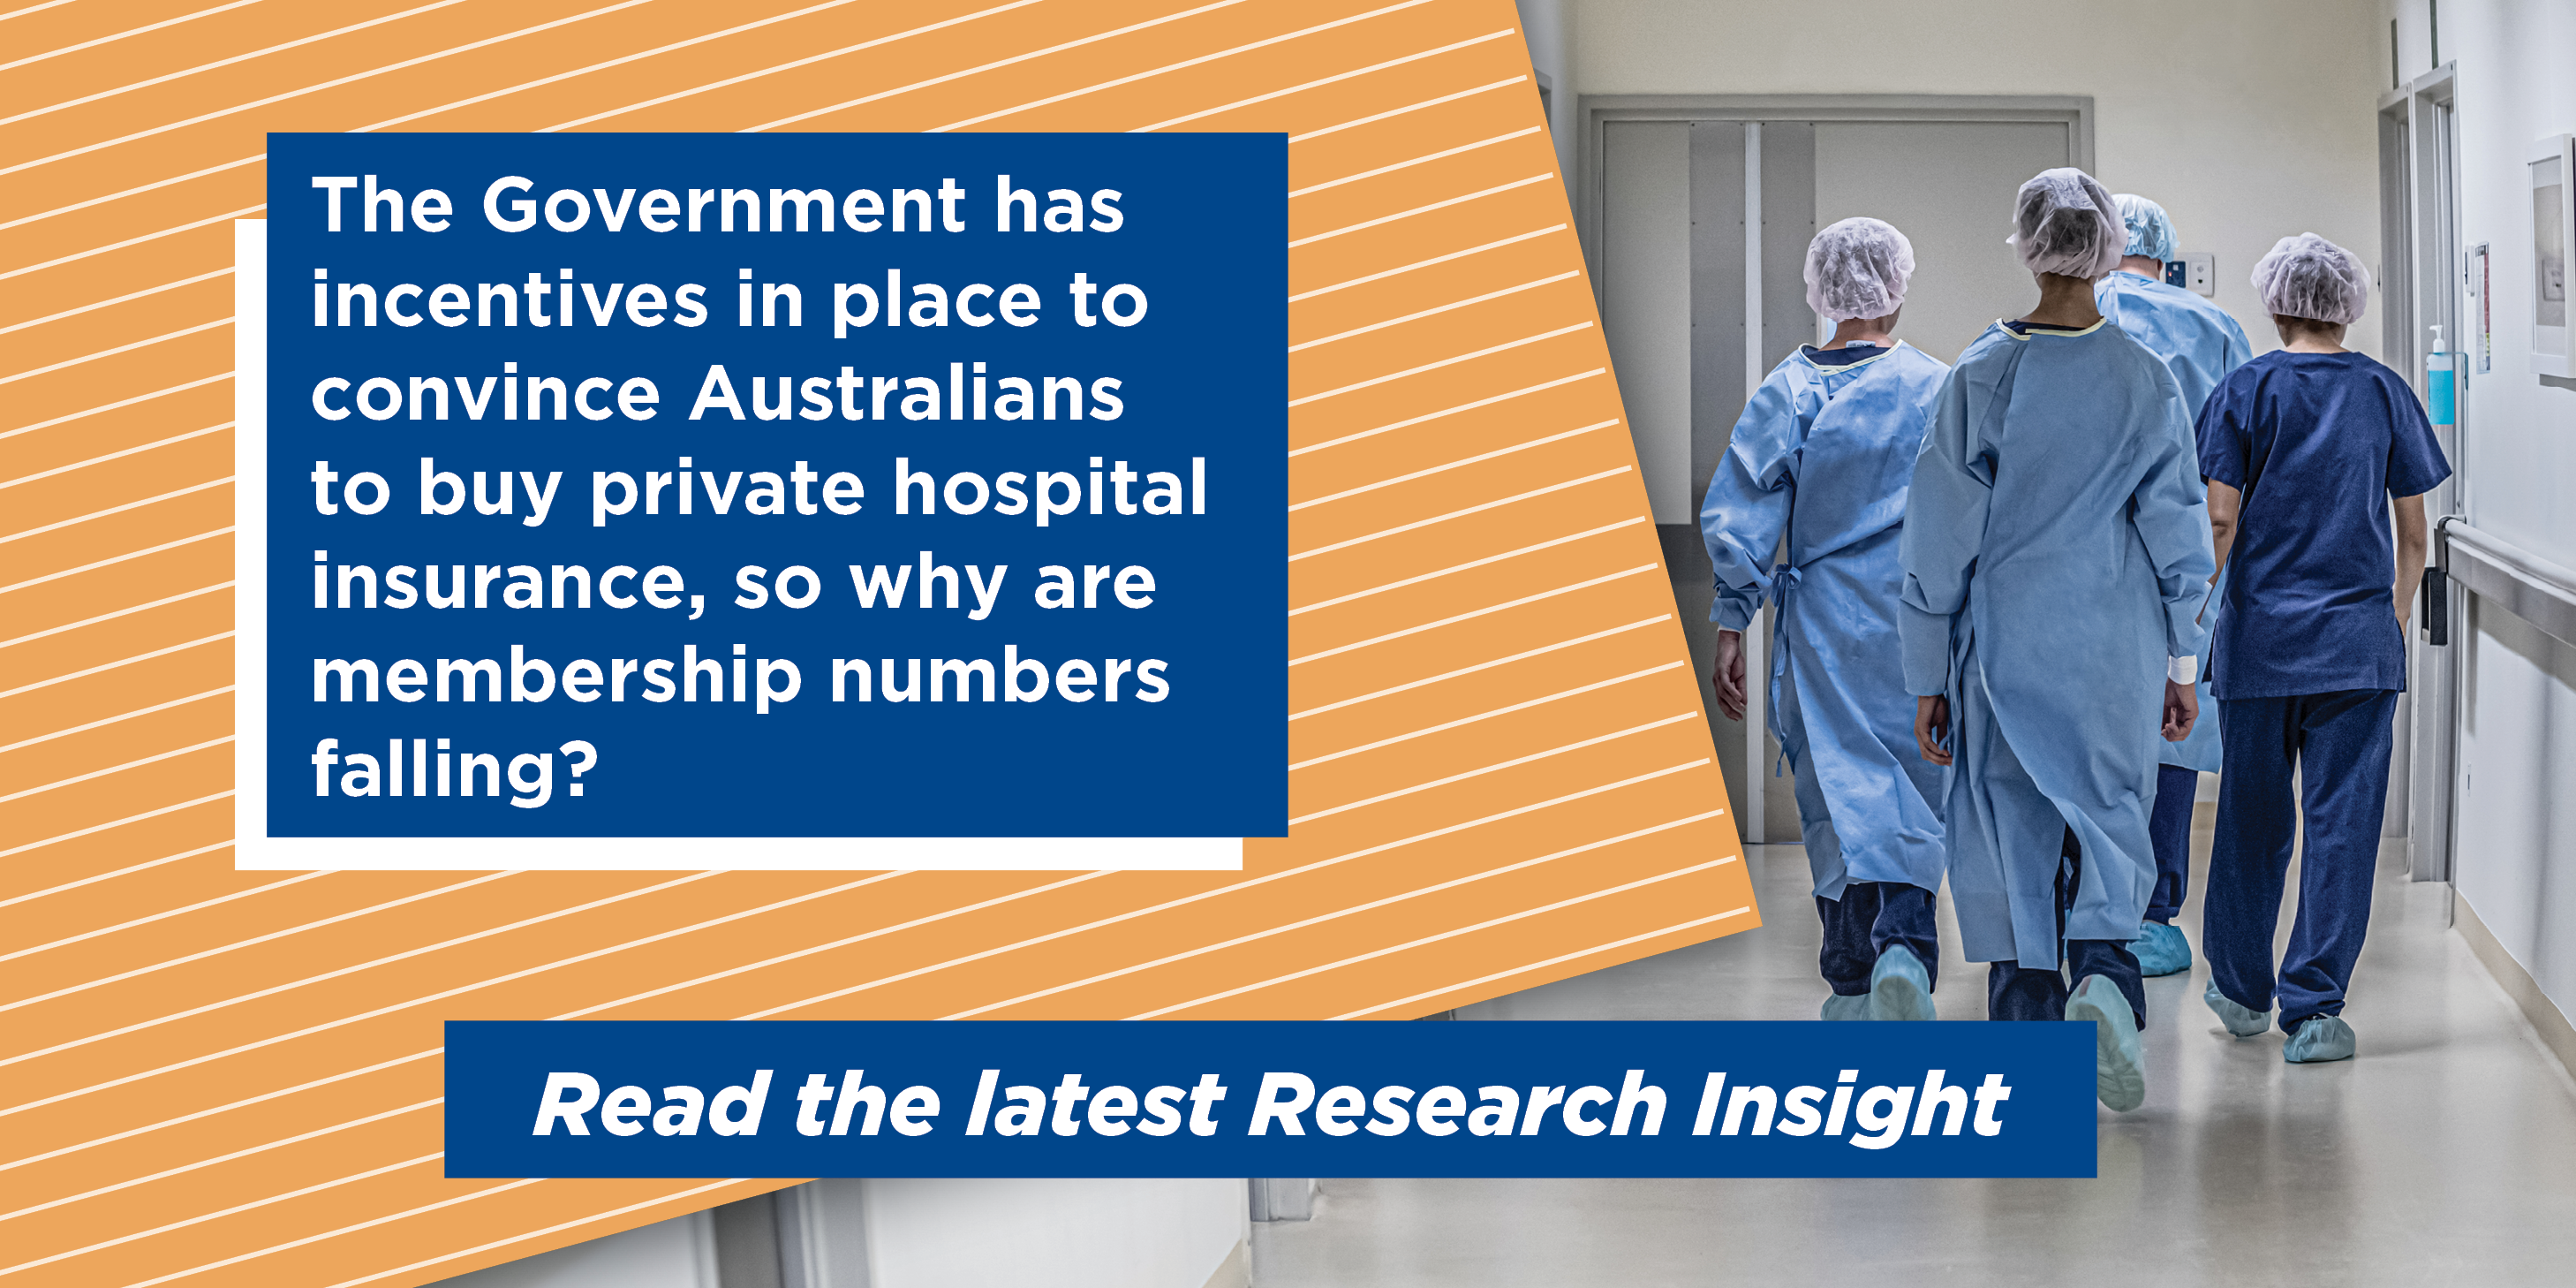 Read the latest Research Insight